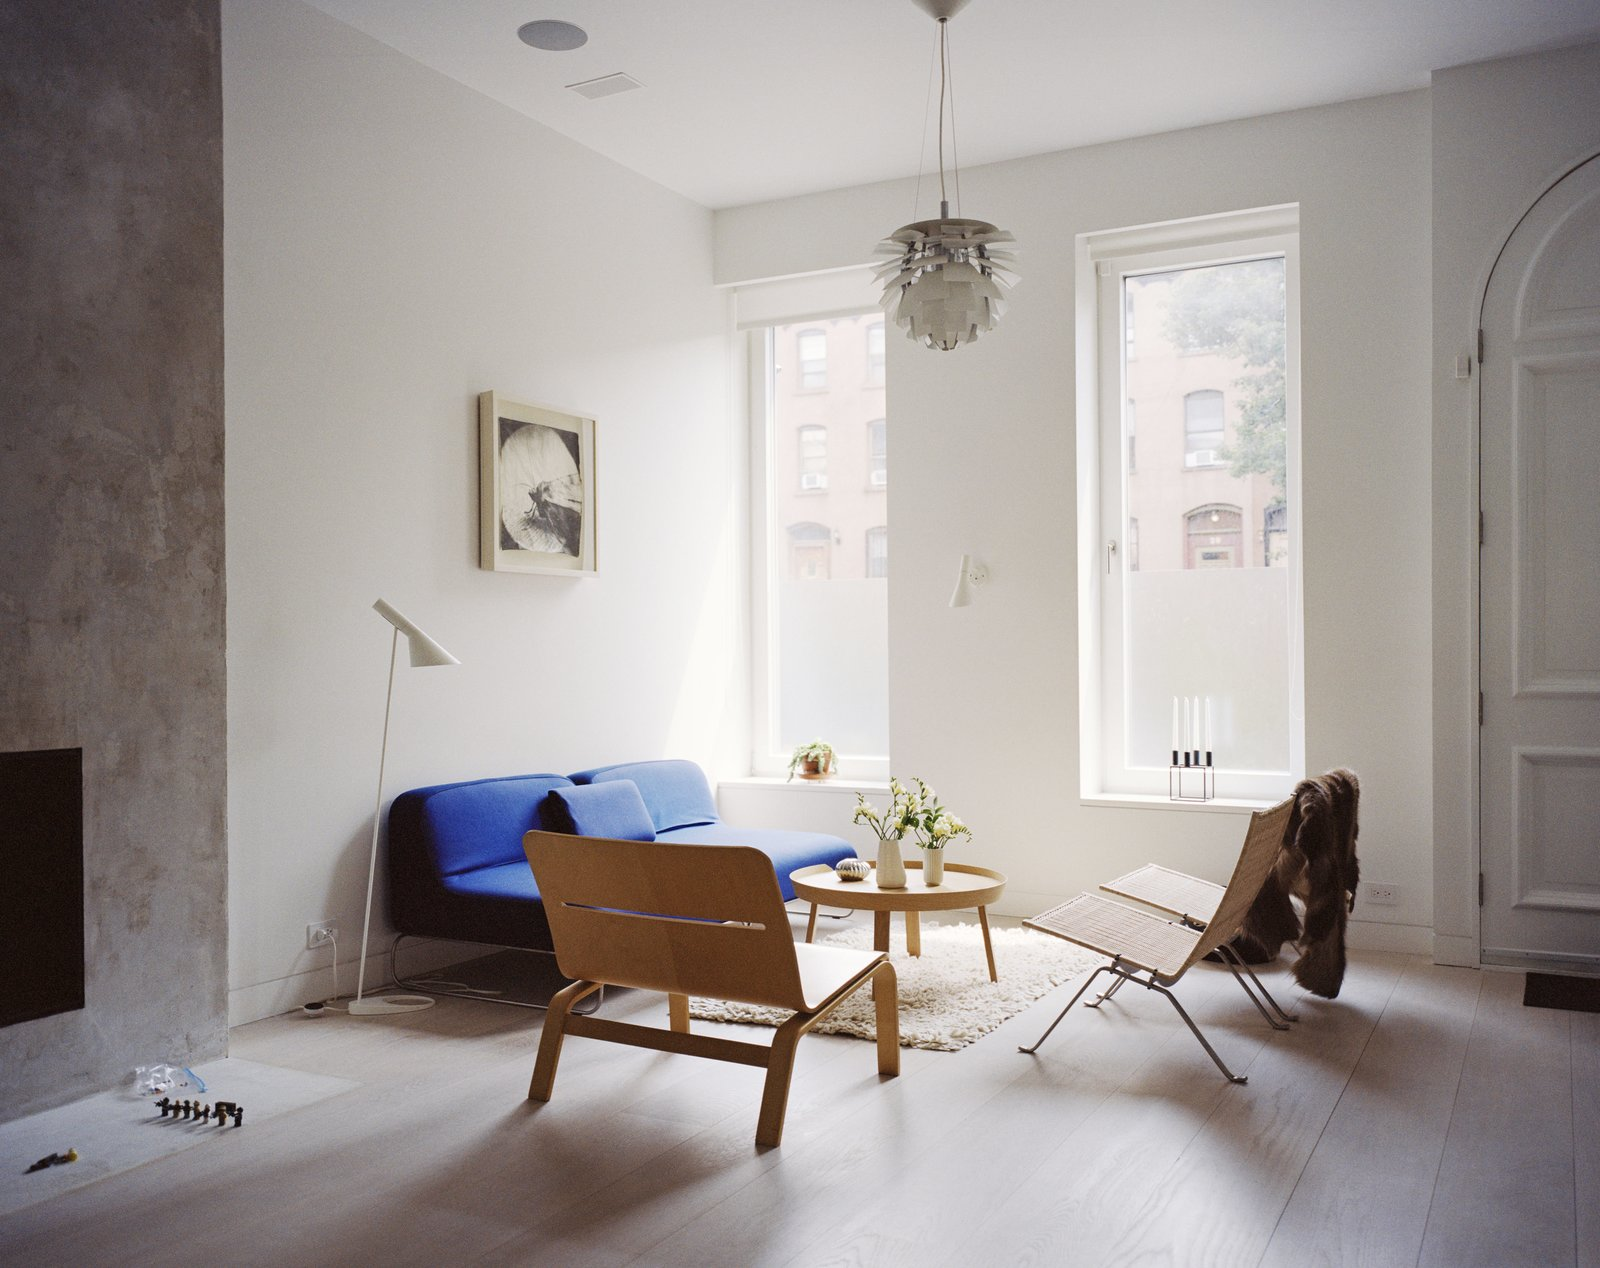 The living room is furnished with rattan chairs from Fritz Hansen, a Muuto side table, an Artichoke pendant by Poul Henningsen for Louis Poulsen, and a blue Living Divani sofa, one of a few color-popping accents found throughout.  Photo 6 of 10 in Our Scandinavian Style Dreams Come True in This Brooklyn Town House